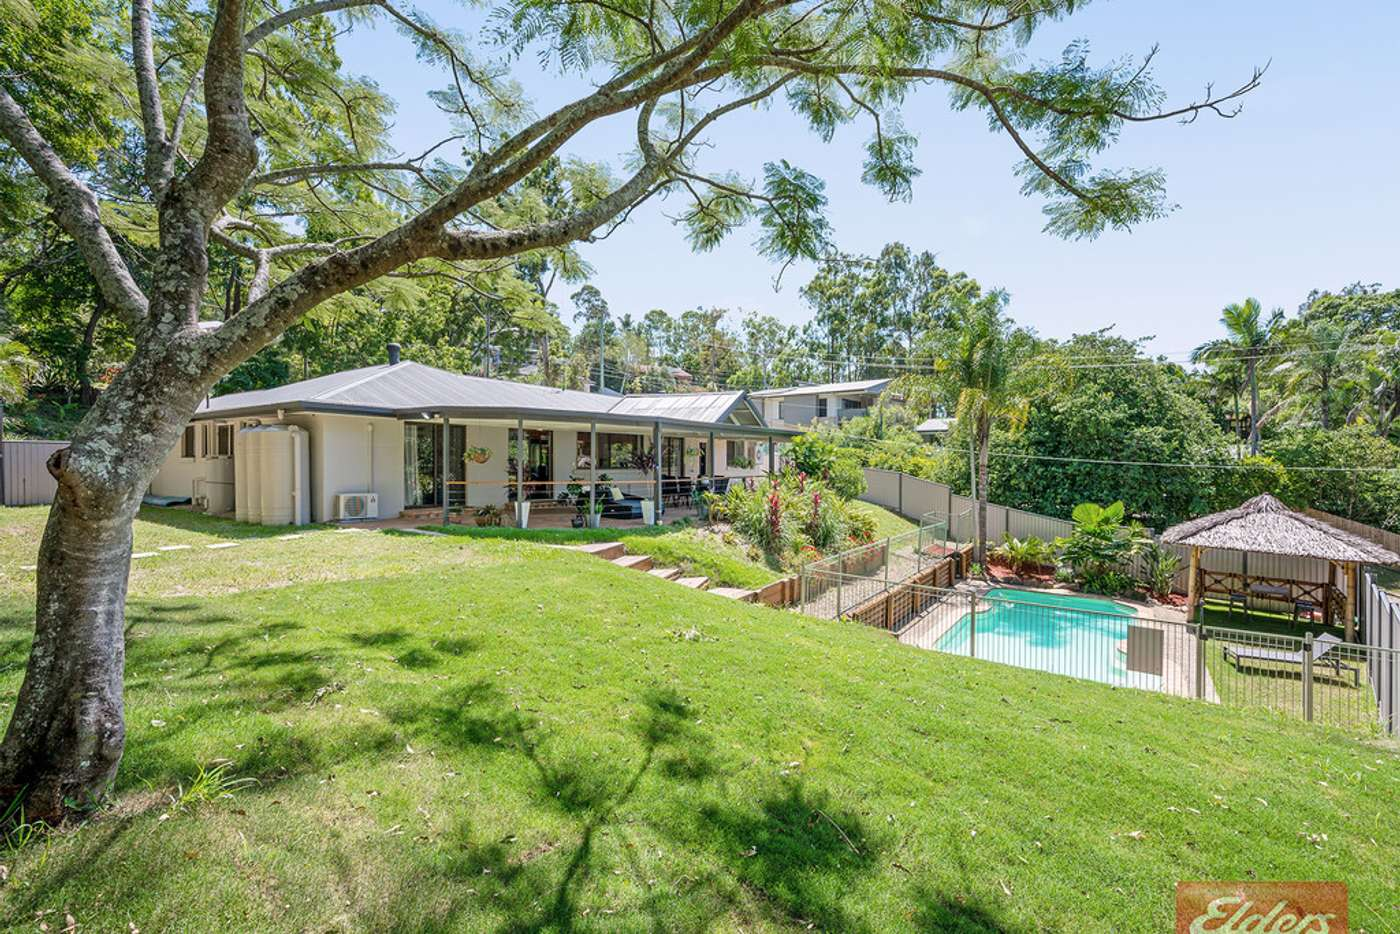 Main view of Homely house listing, 5 TRUDY CRESCENT, Cornubia QLD 4130